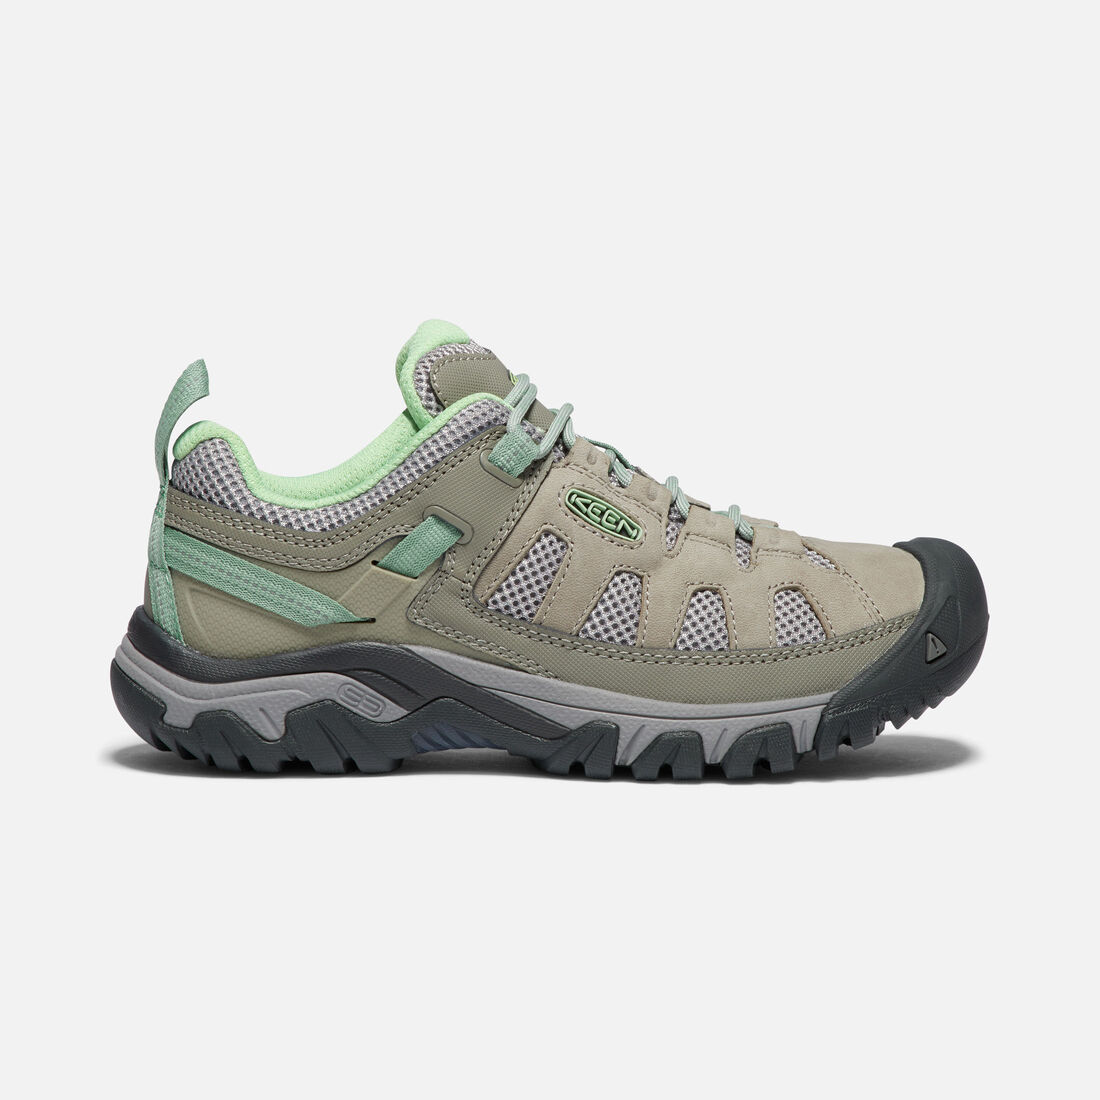 Women's TARGHEE VENT in FUMO/QUIET GREEN - large view.